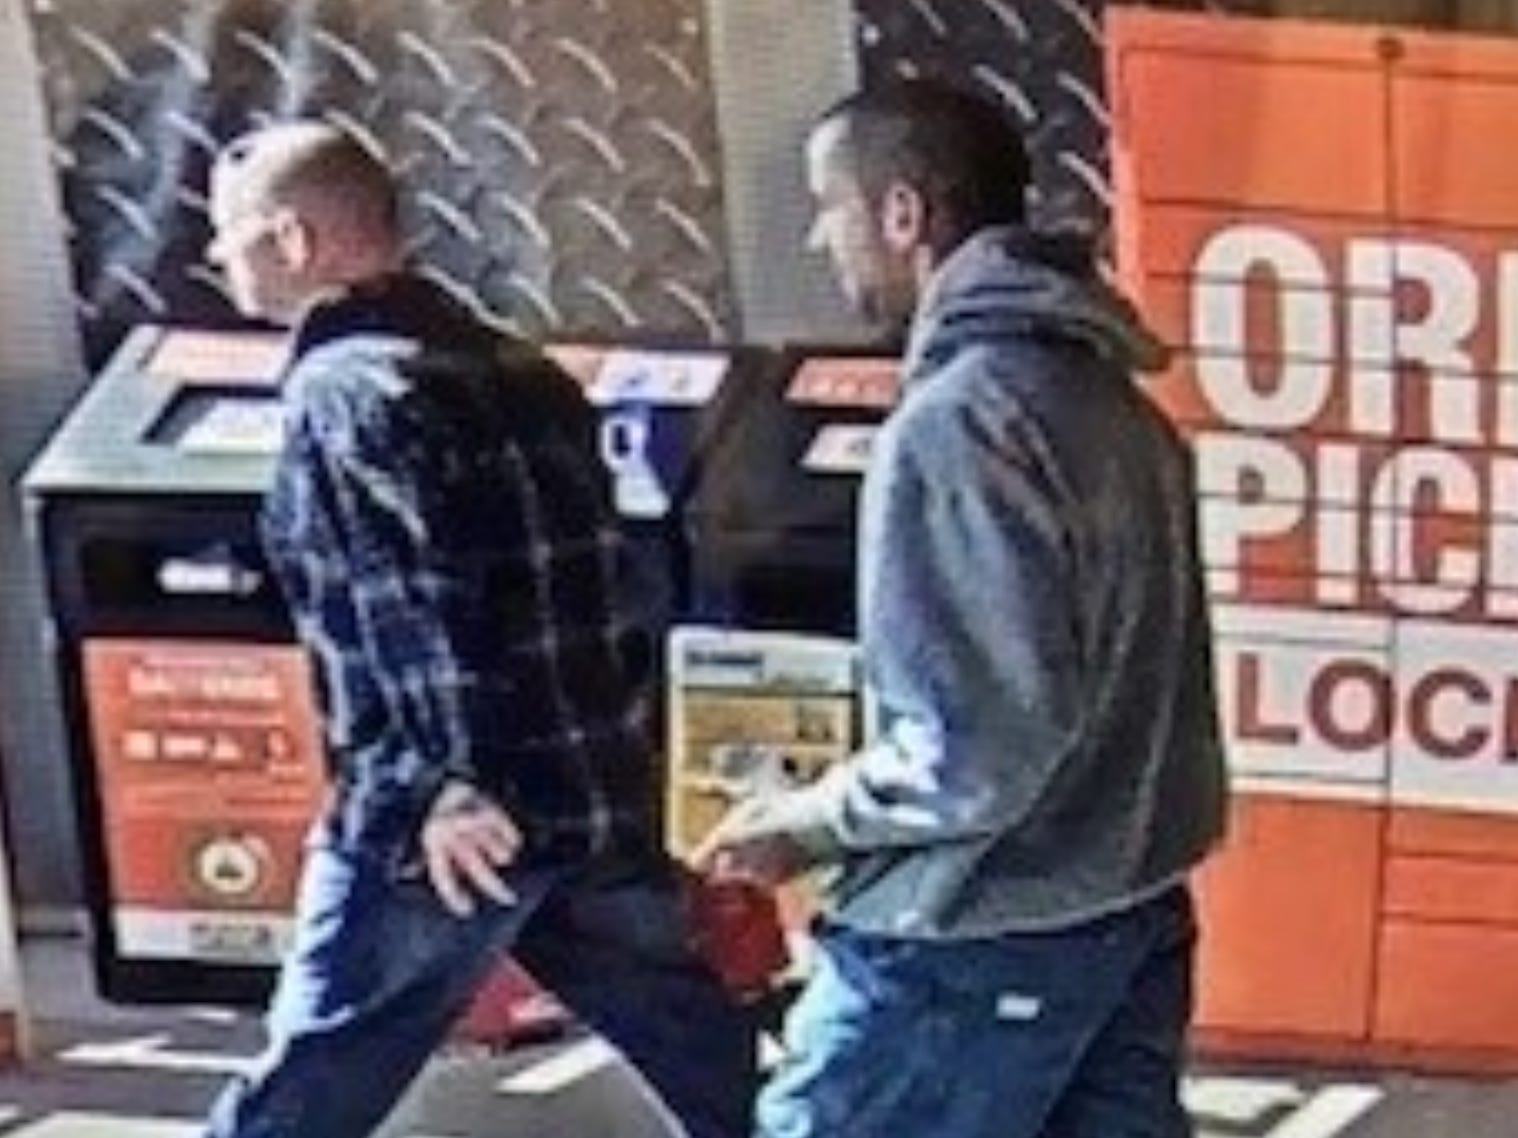 In October, two men stole multiple power tool sets from a local home improvement store, police said. They fled in what appeared to be a white Ford Ranger pick-up truck. The approximate value of the stolen property is $678.